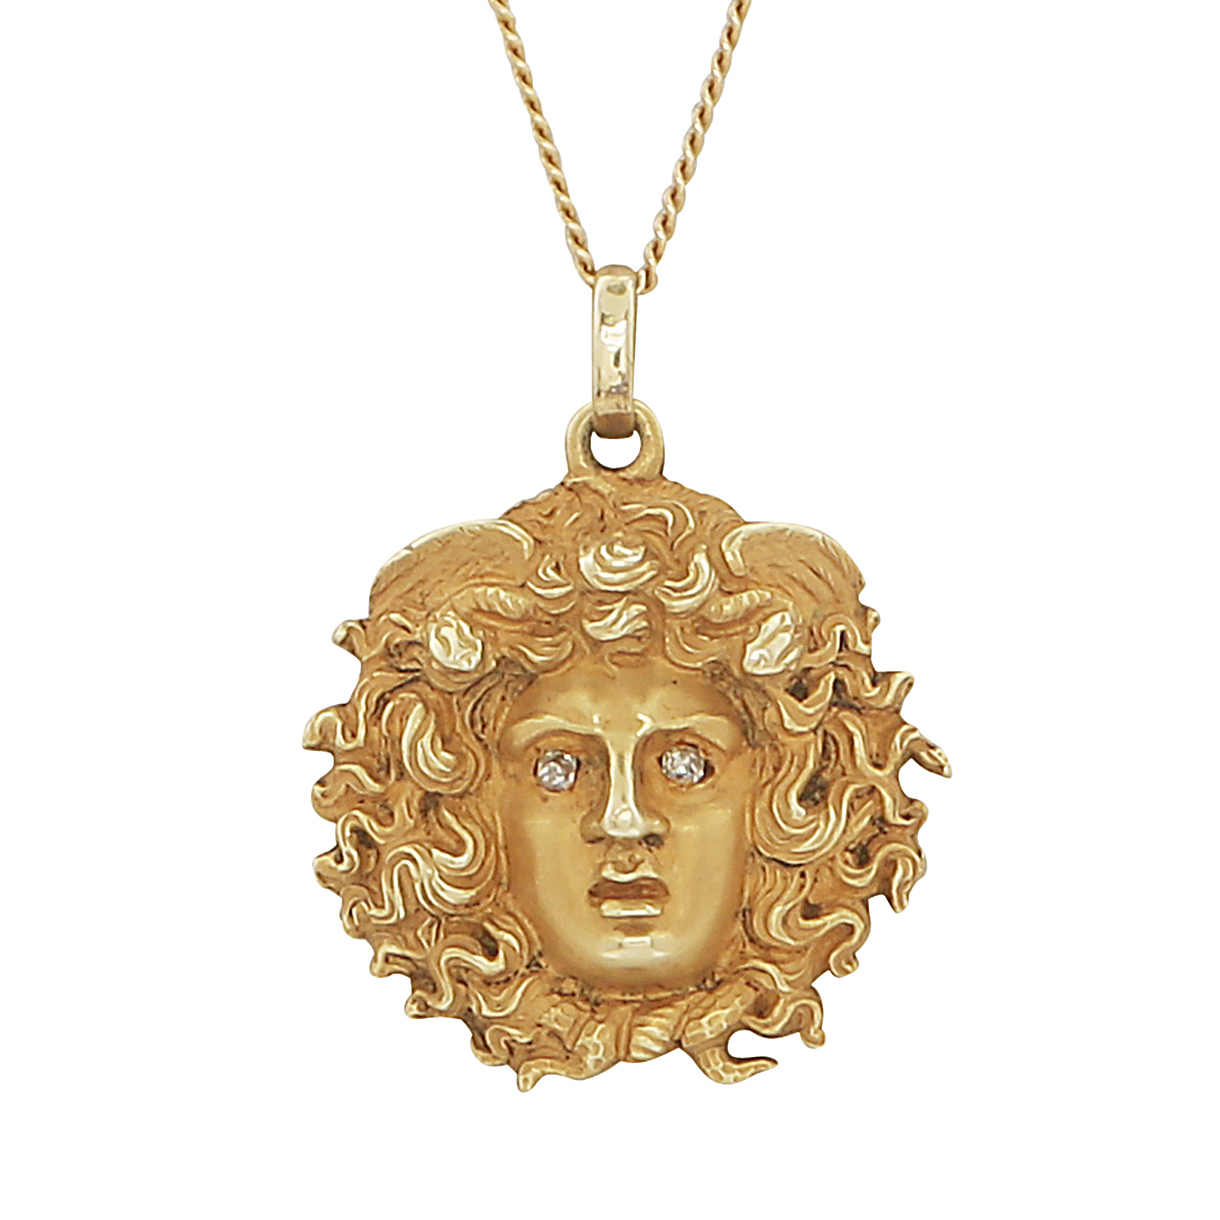 Los 219 - GREEK MYTHOLOGY - An antique jewelled pendant and chain in high carat yellow gold, modeled as the